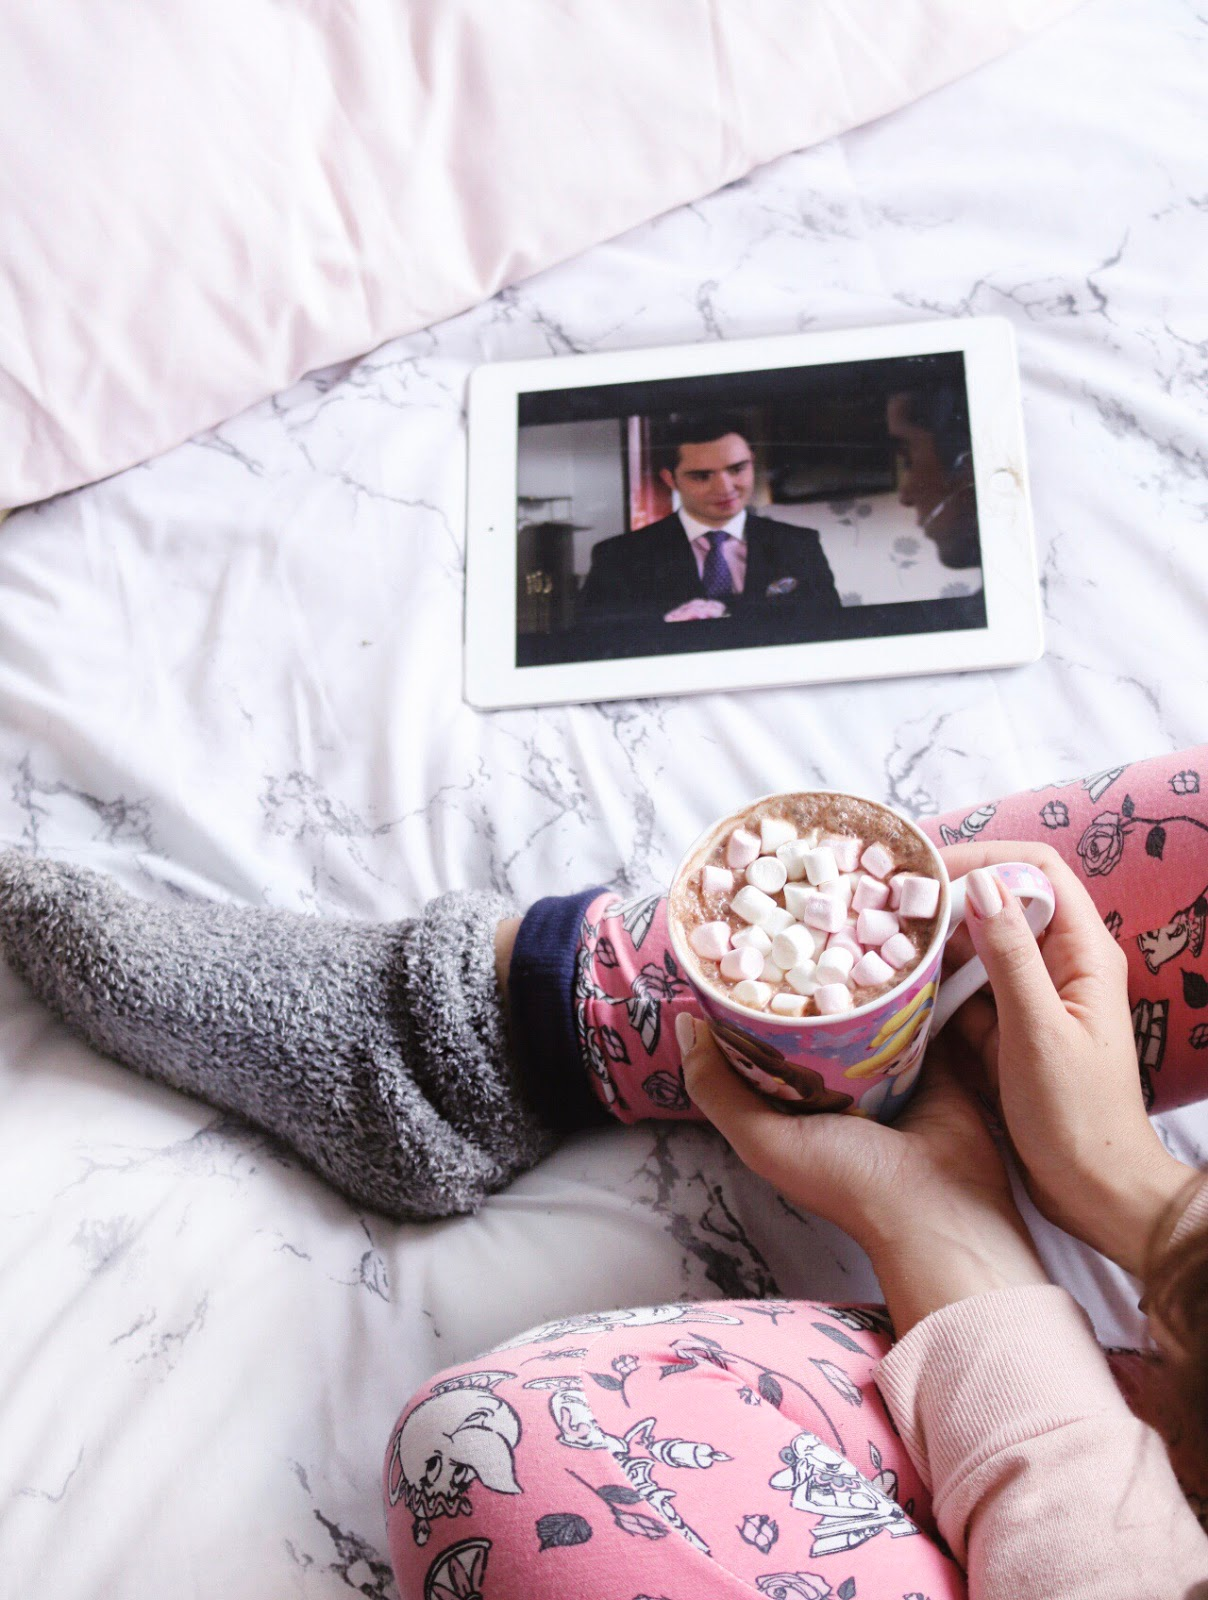 Cosy Things To Watch This Autumn, chuck bass, ed westick, Gilmore Girls, what to watch on netflix, autumn watching, night in, what to watch on tv, gossip girl, netflix, things to watch on a cosy evening,